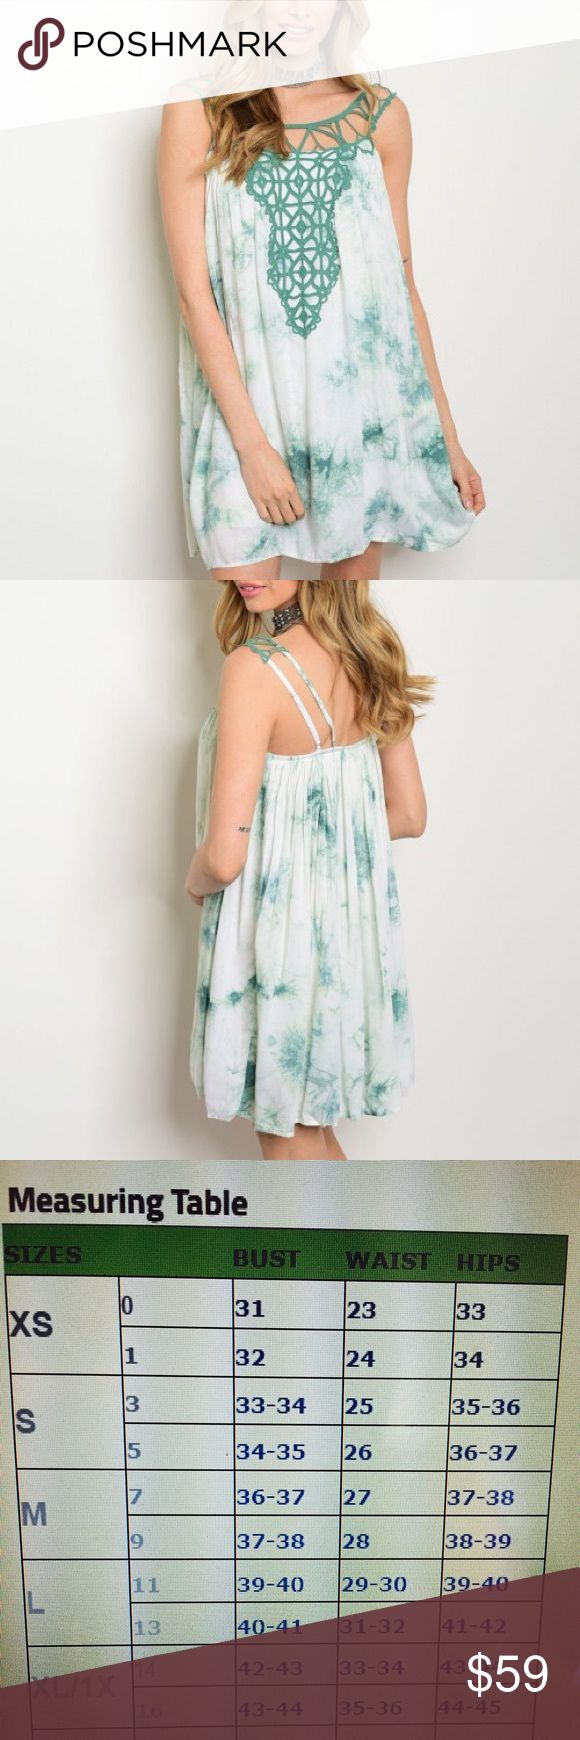 Adorable Jade Tie Dye Crochet Dress This dress is the perfect flattering silhouette dress, which can be paired with your favorite accessories. Beautiful scoop neck. Crochet detail. 100% rayon. Get if before it's gone! amandine boutique Dresses